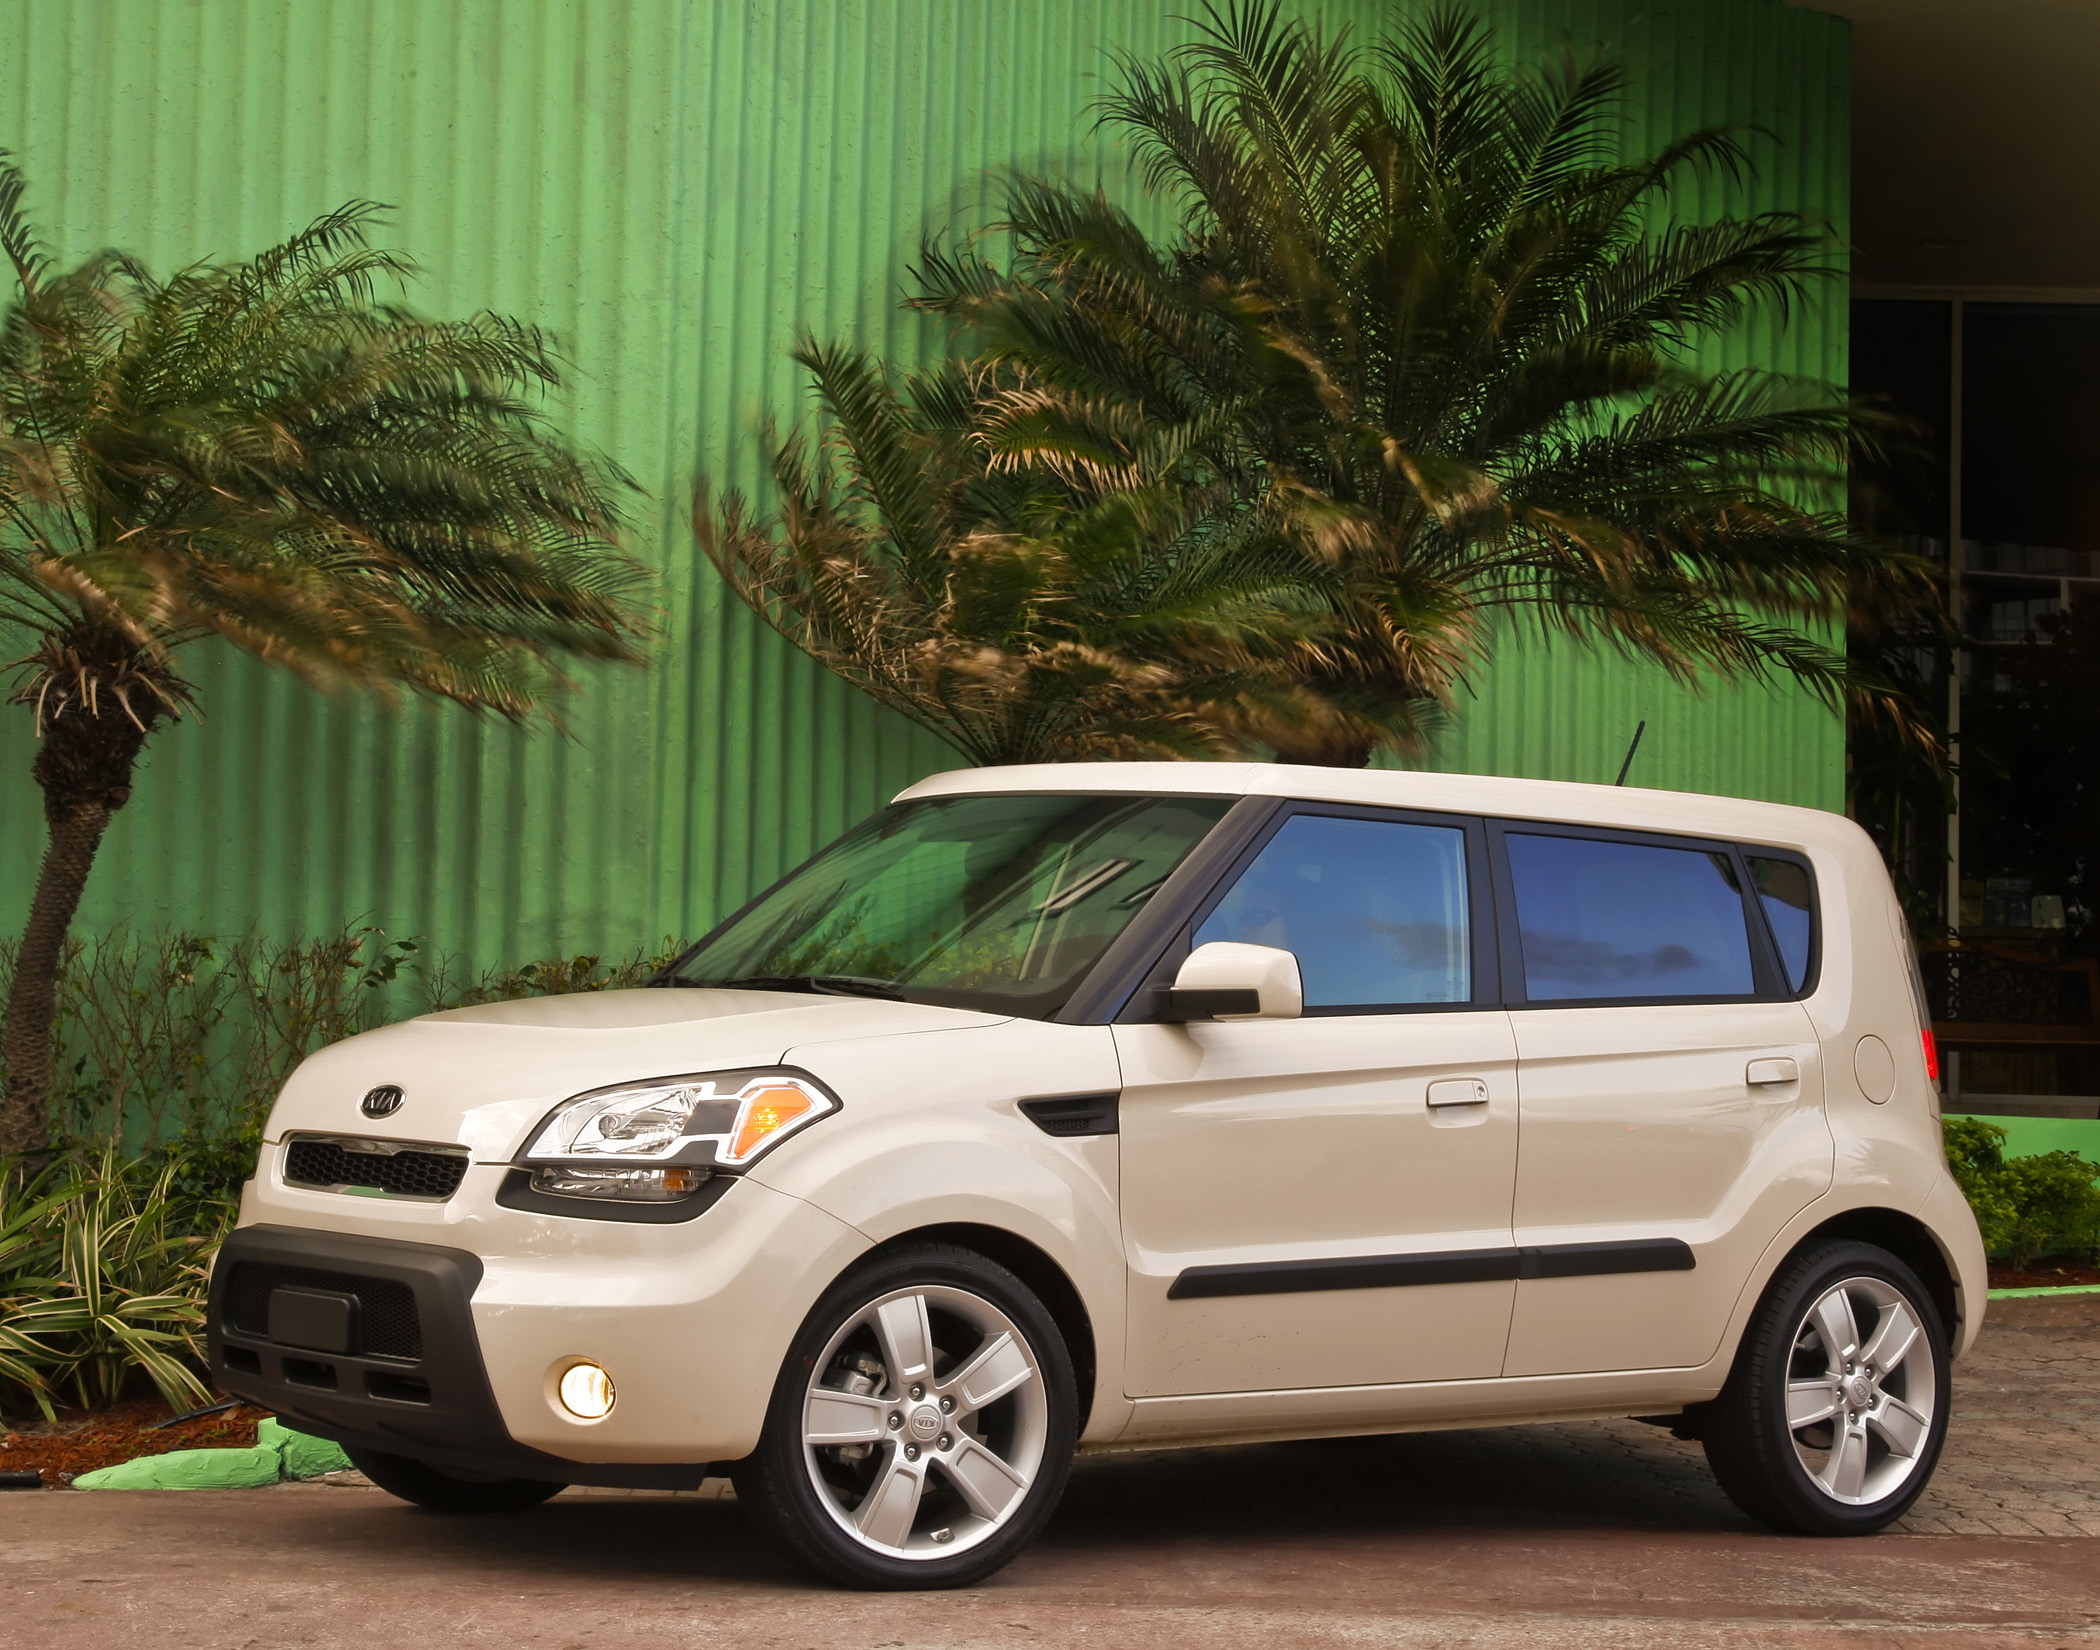 Manufacturer Photo: The All New 2010 Kia Soul Has A Starting Price Of  $13,300